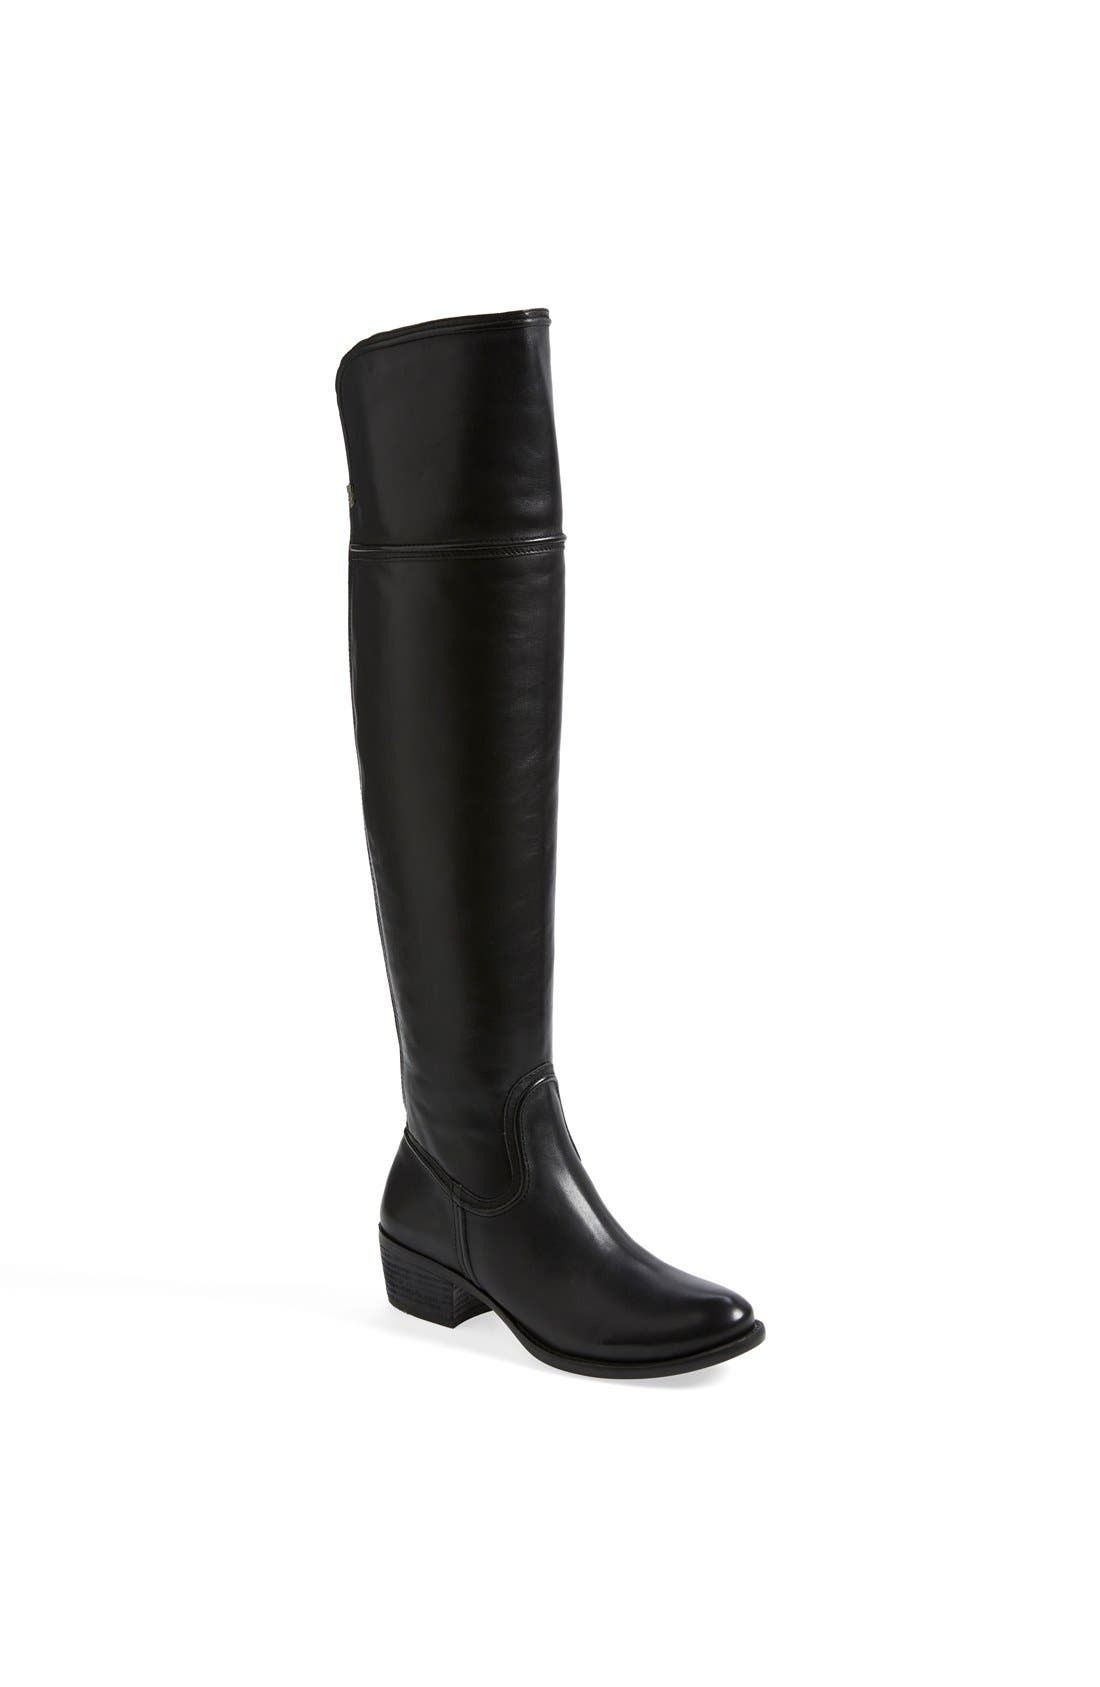 Alternate Image 1 Selected - Vince Camuto 'Baldwin' Over the Knee Boot (Nordstrom Exclusive) (Women)